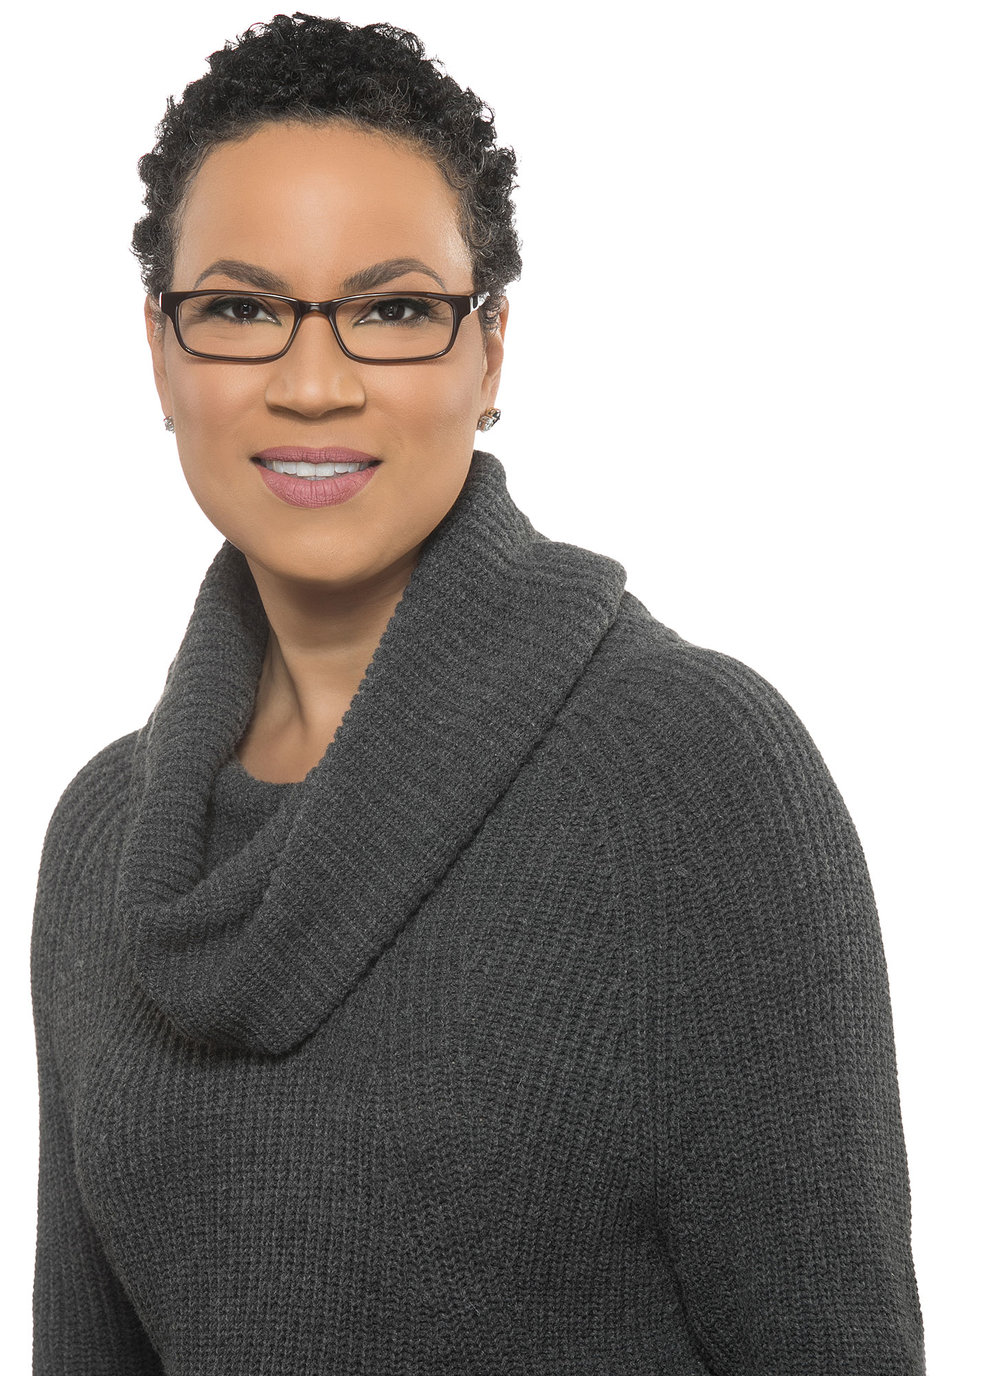 Shauna C. Bryce, Esq. Founder and Principal of Bryce Legal  Harvard Law School JD, former AmLaw 200 hiring attorney, and nationally recognized expert in legal careers   Find out more about Shauna →